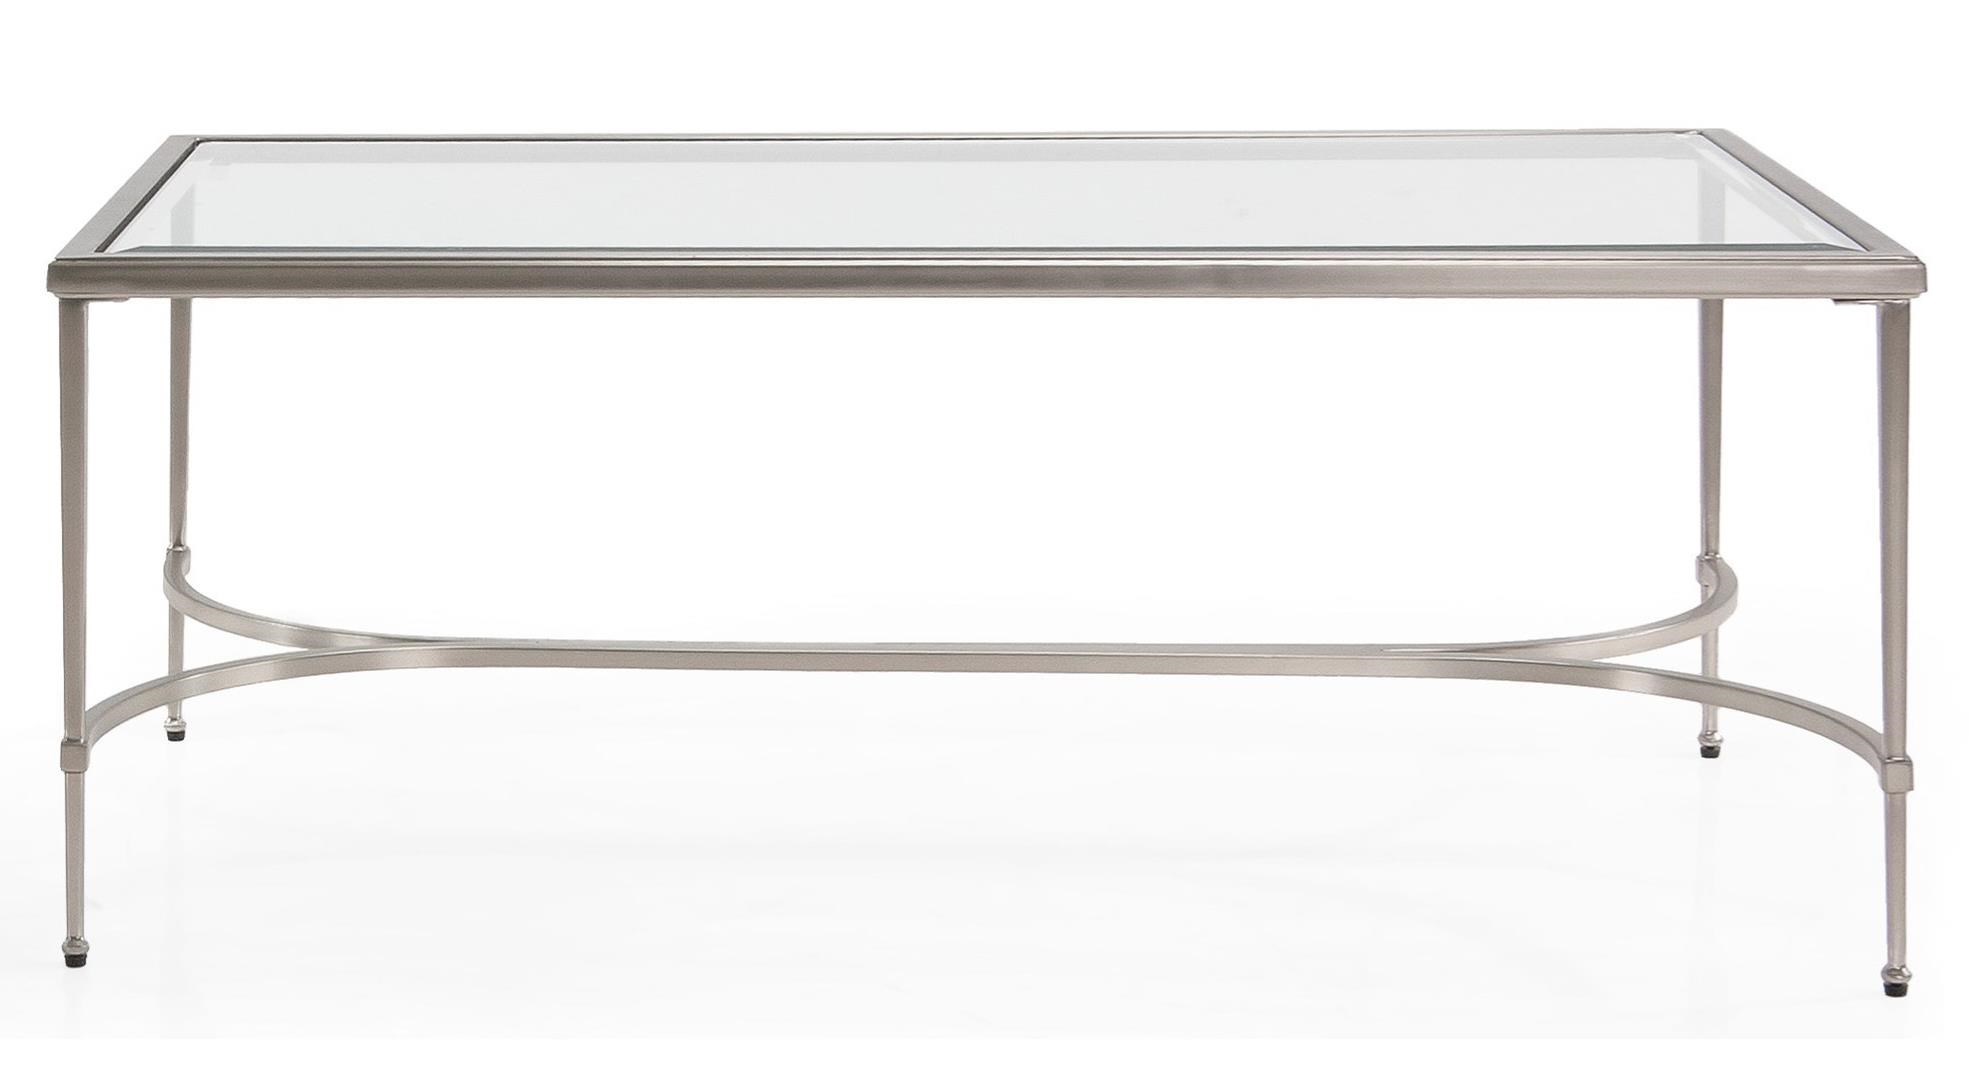 Galleria - Accent on Home Coffee Table by Decor-Rest at Upper Room Home Furnishings